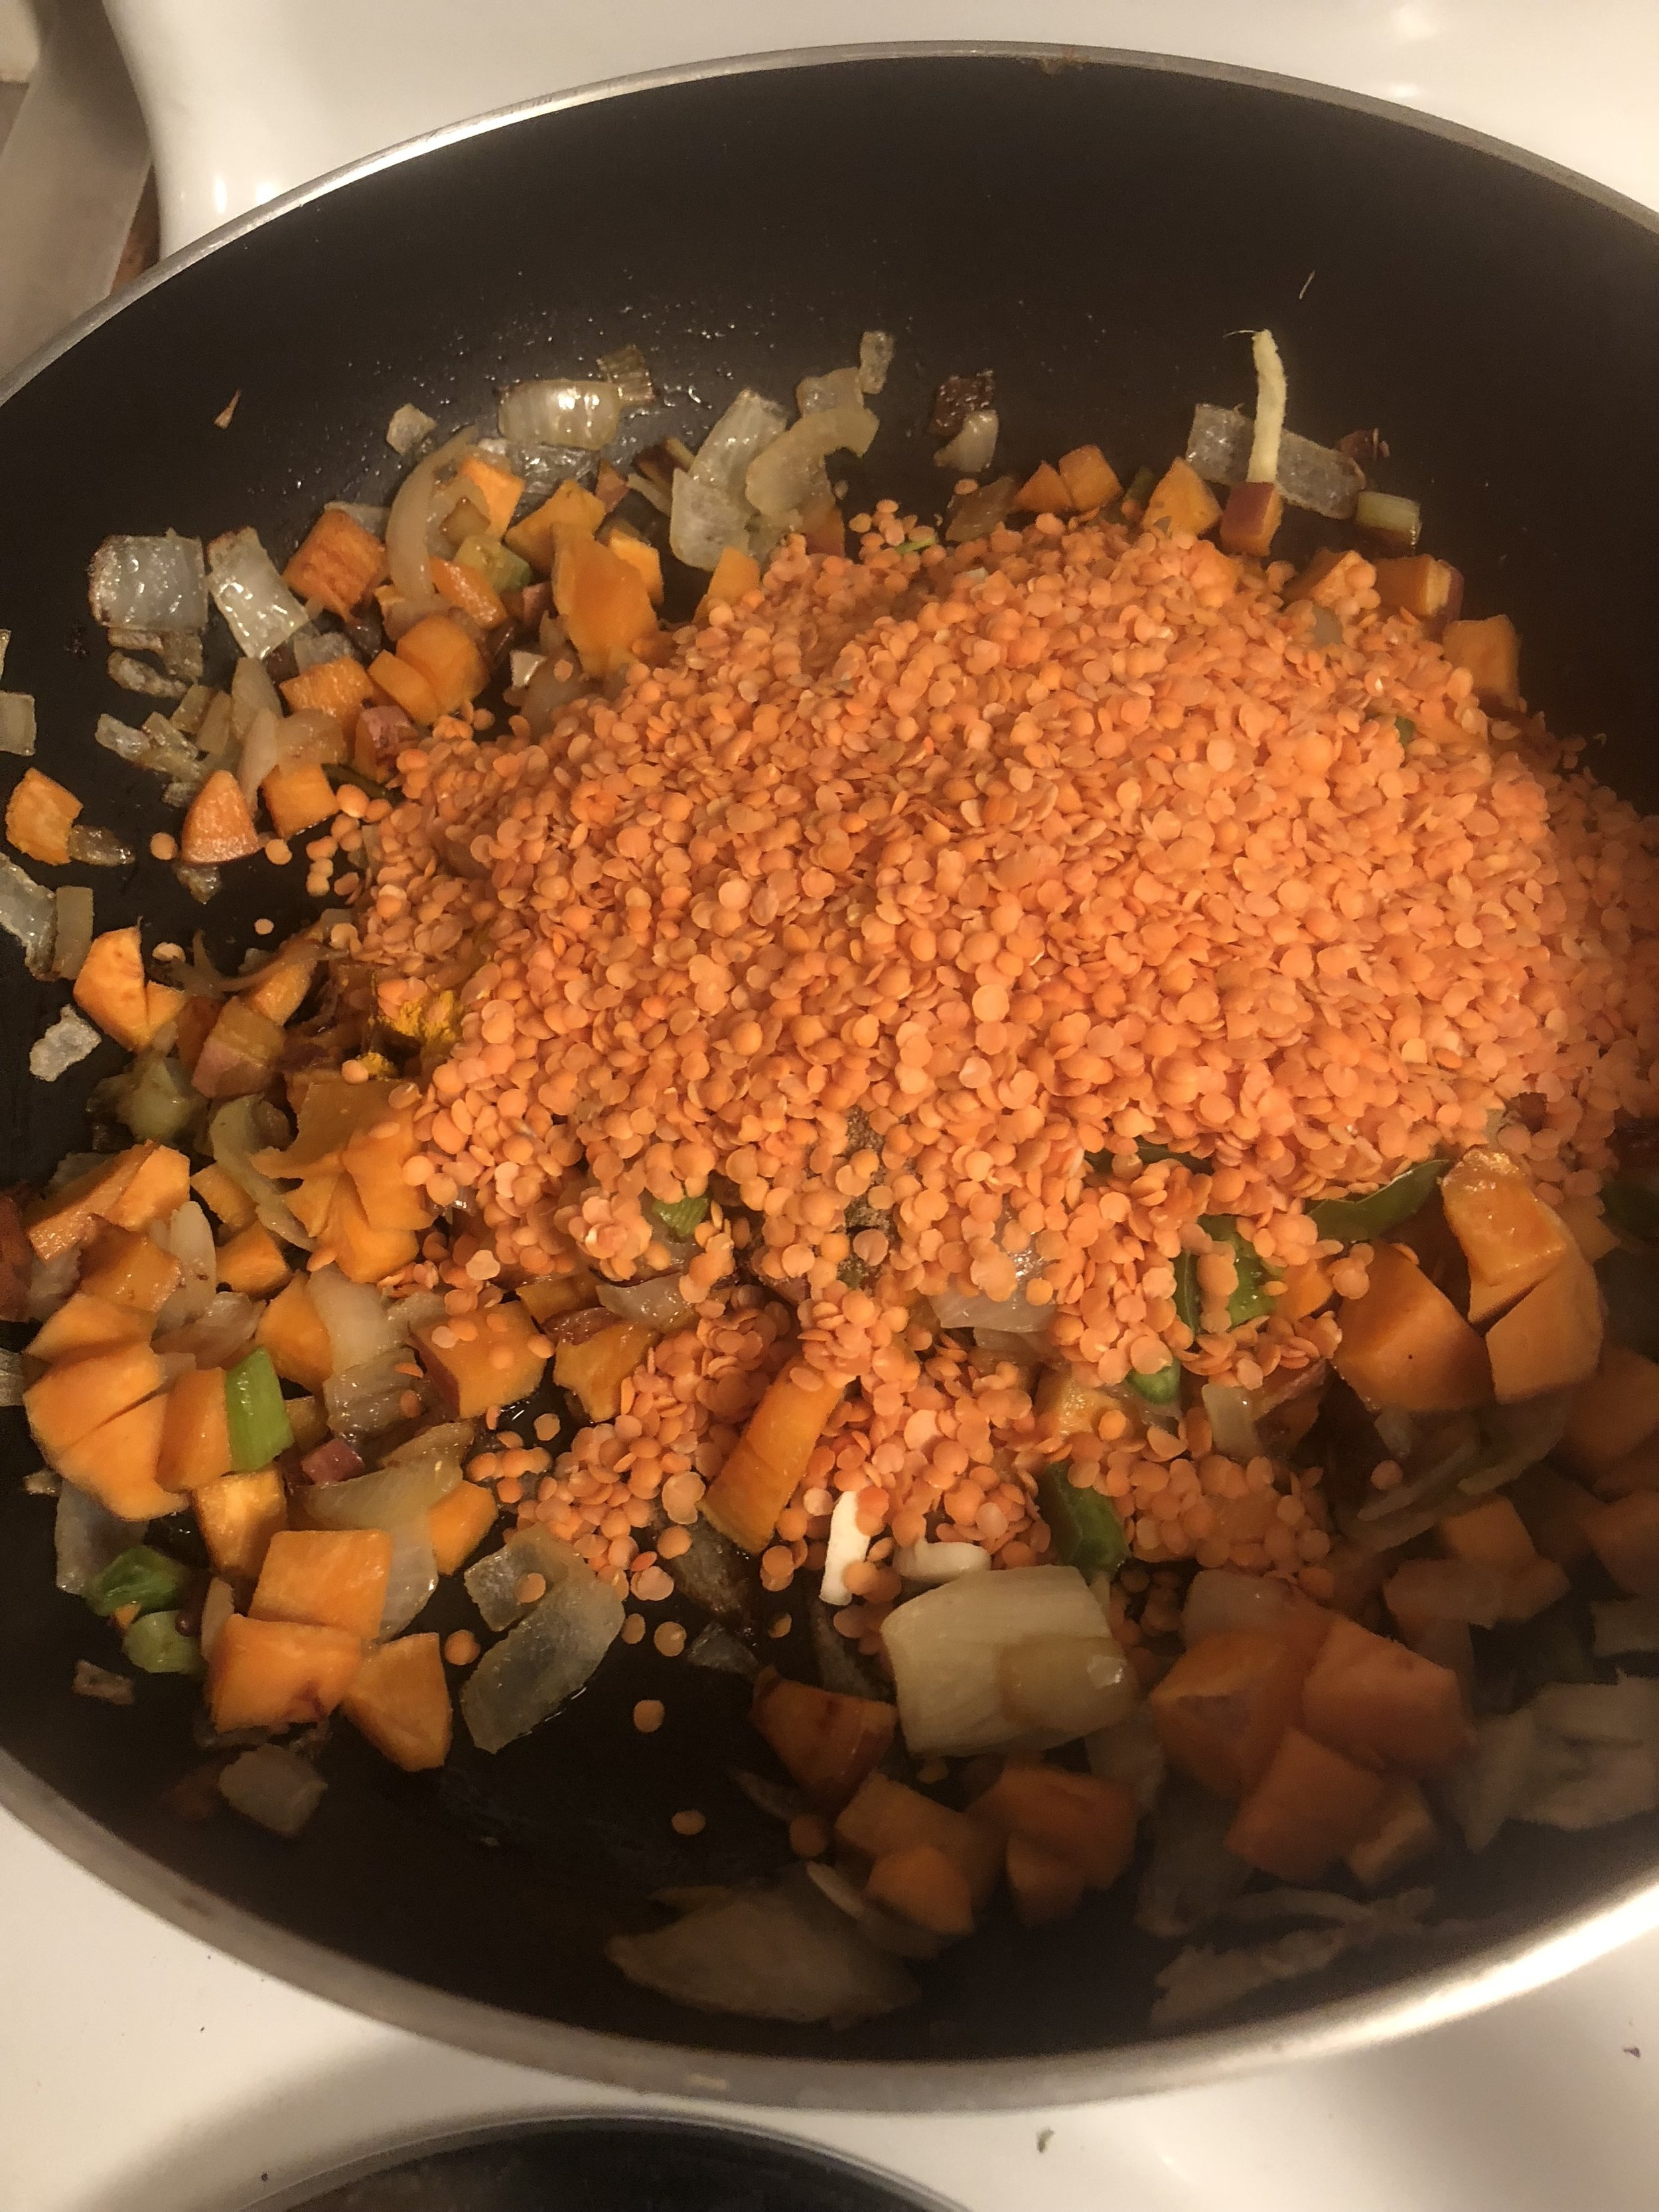 Add the lentils on top, stirring so all the lentils are coated with oil